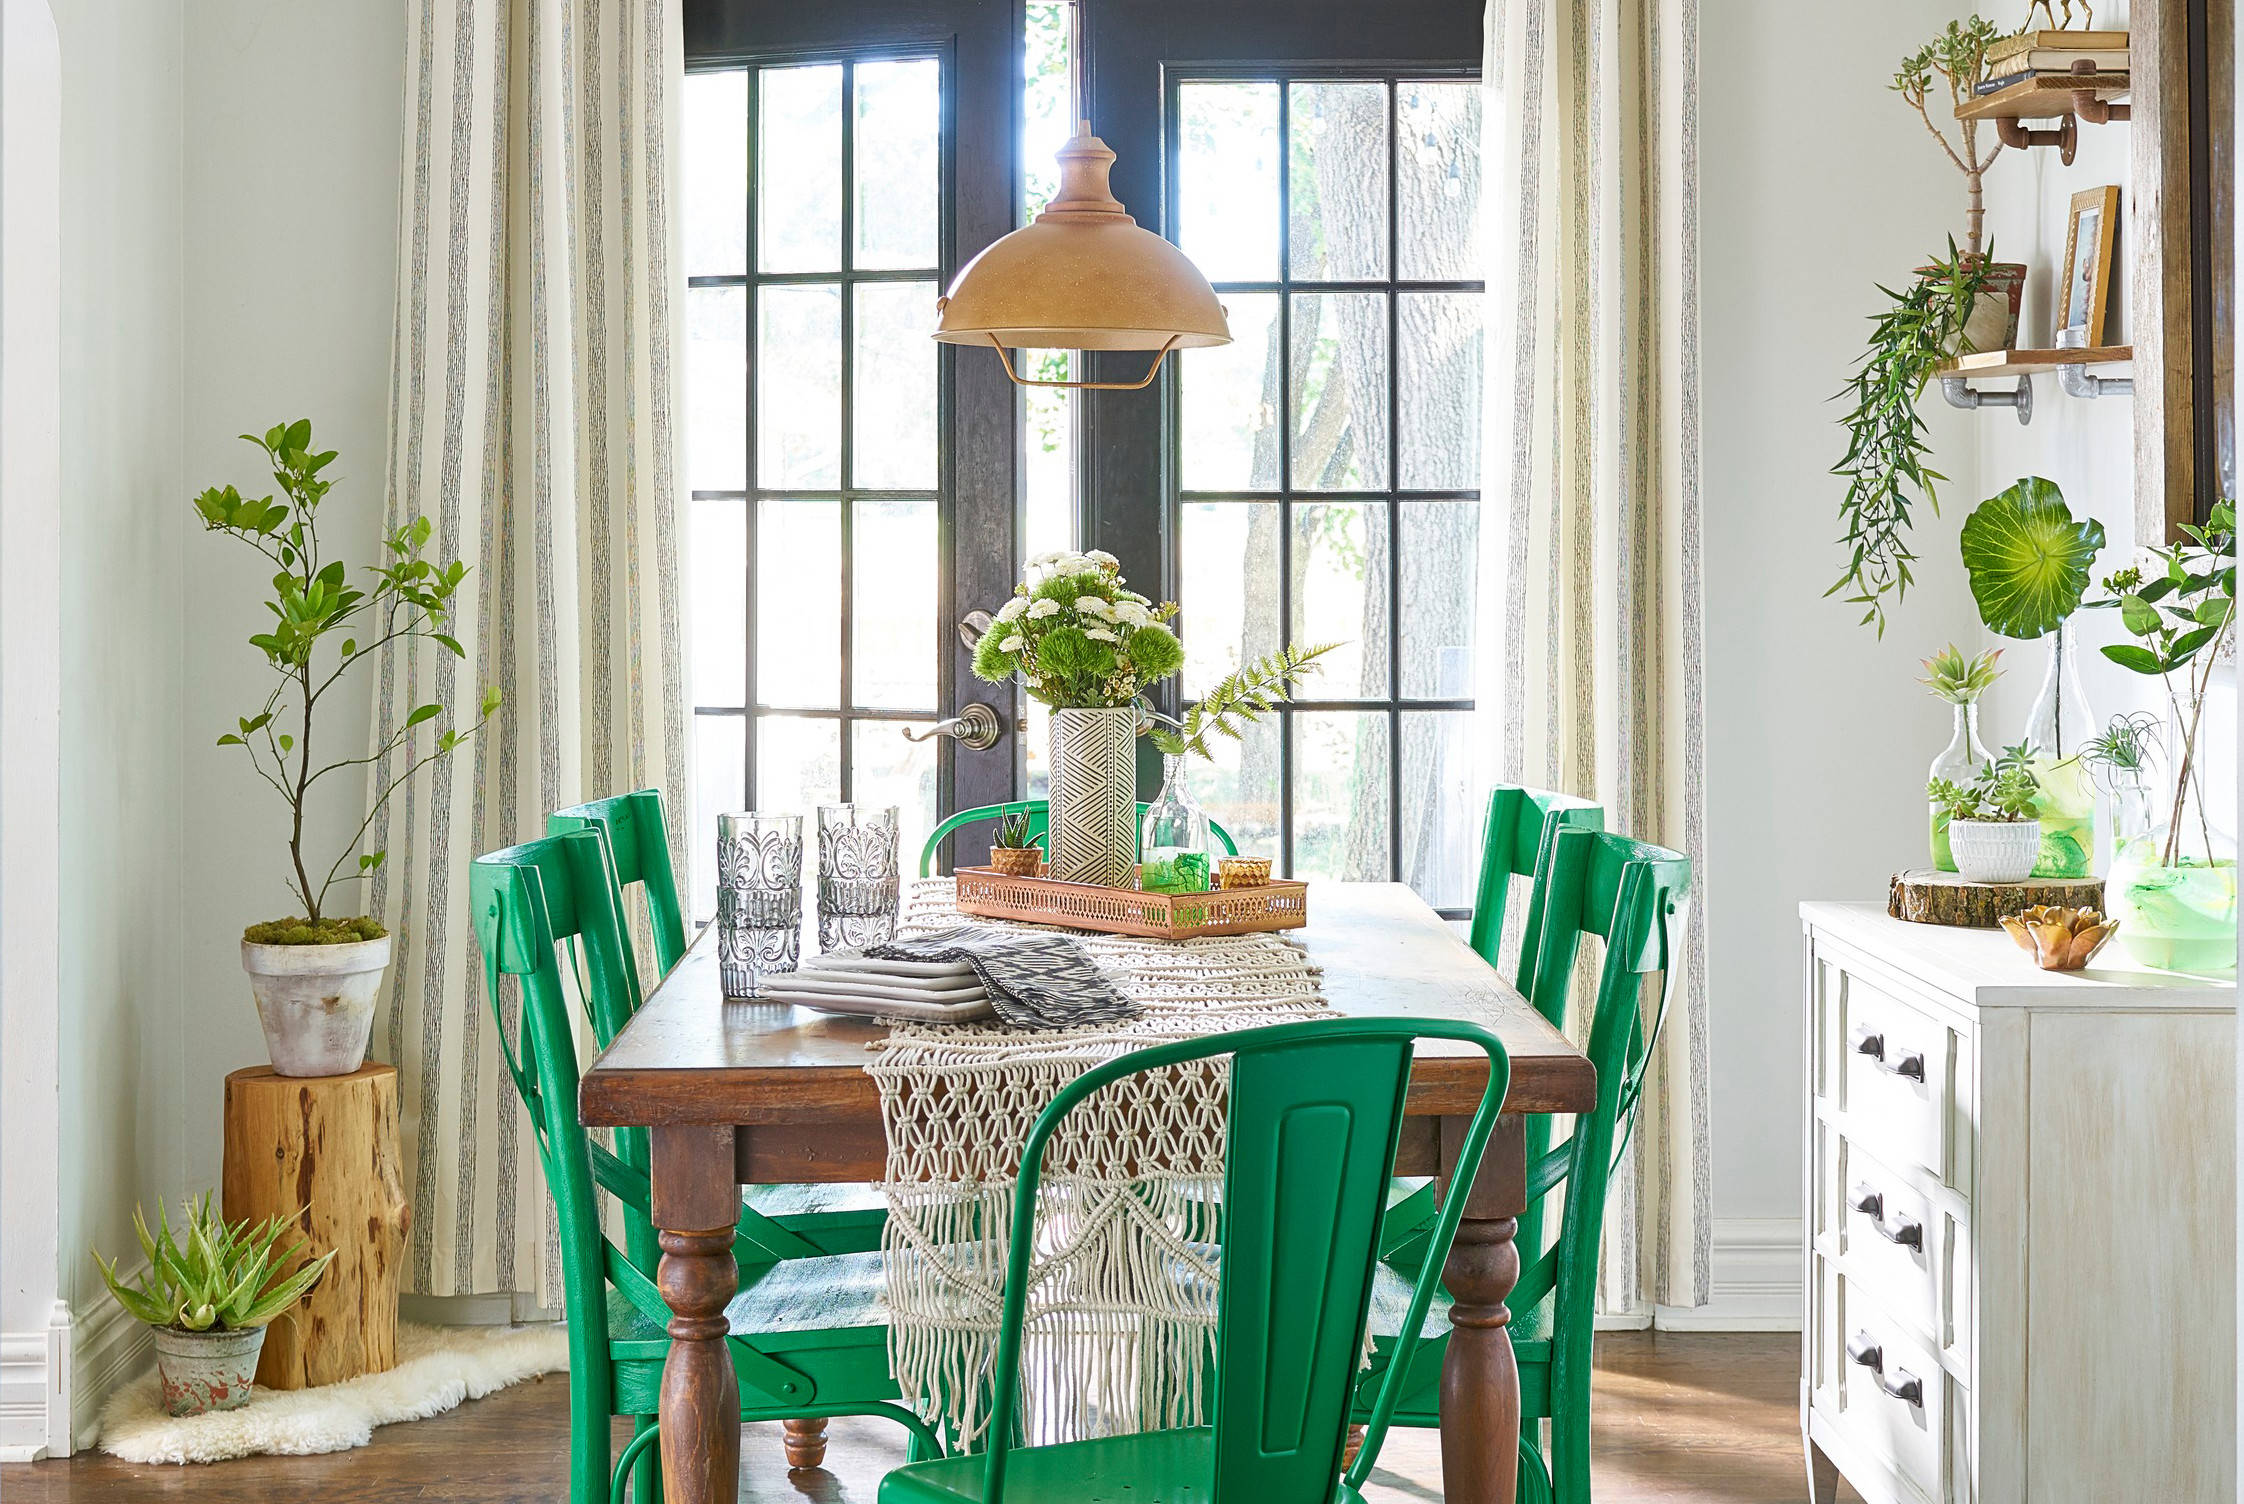 75 Beautiful Shabby Chic Style Dining Room Pictures Ideas February 2021 Houzz